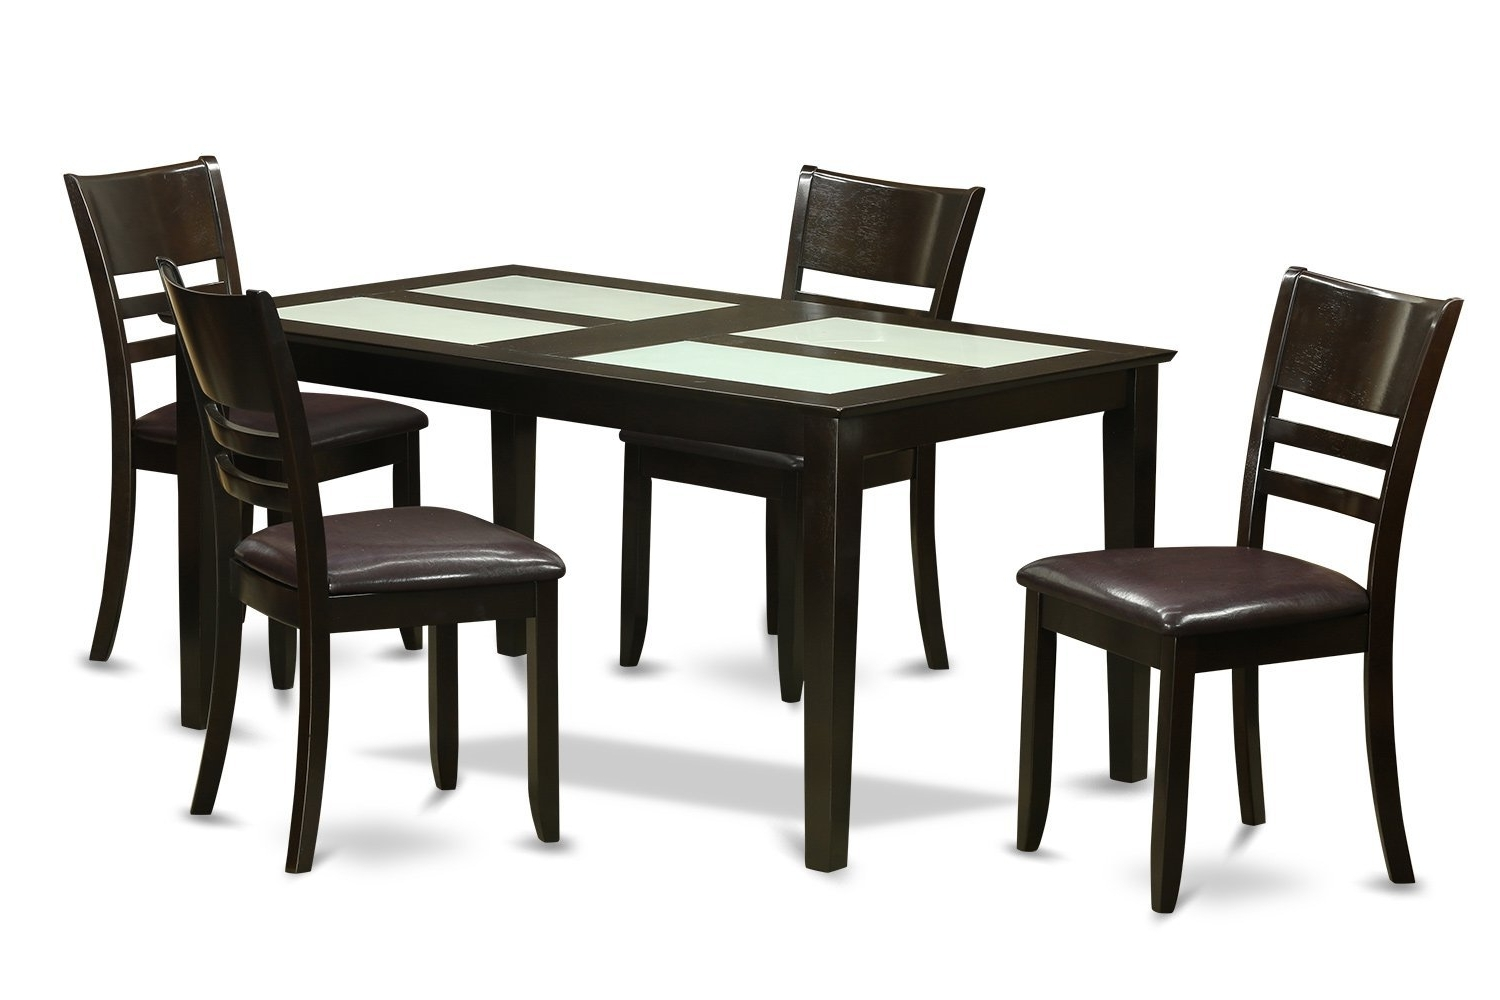 Cheap Dining Table, Find Dining Table Deals On Line At Alibaba Within Most Current Cheap Dining Tables (View 24 of 25)